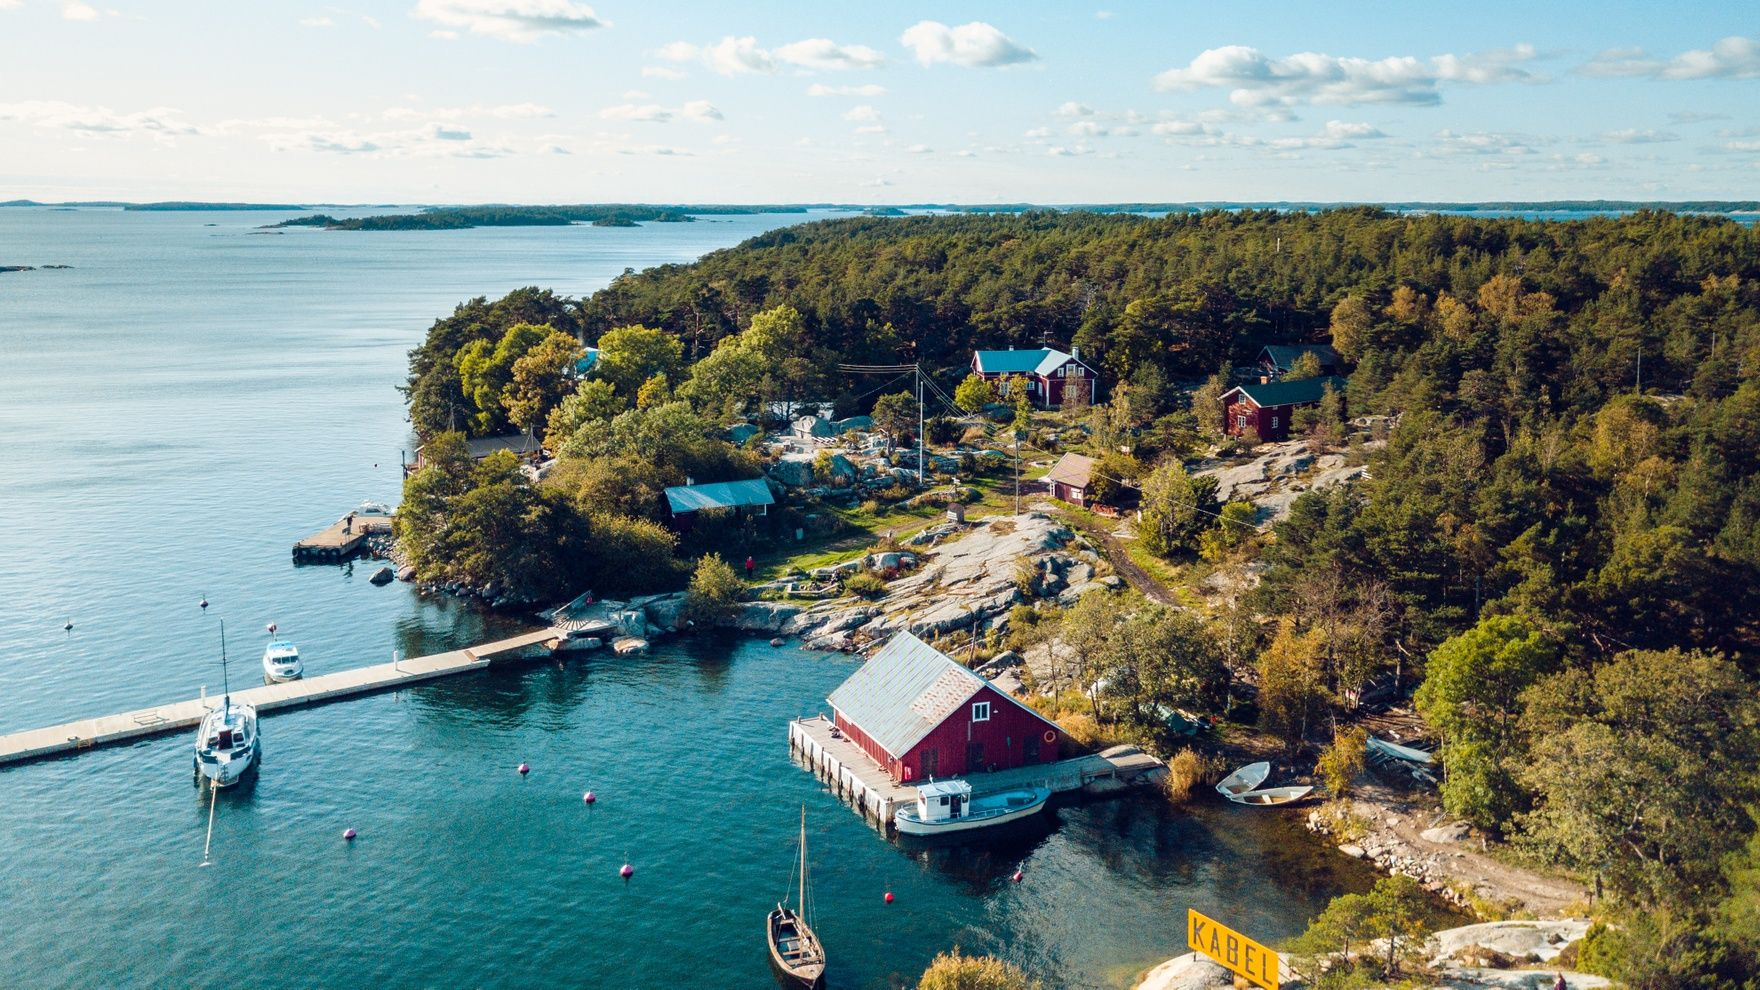 Expedition to the Turku archipelago